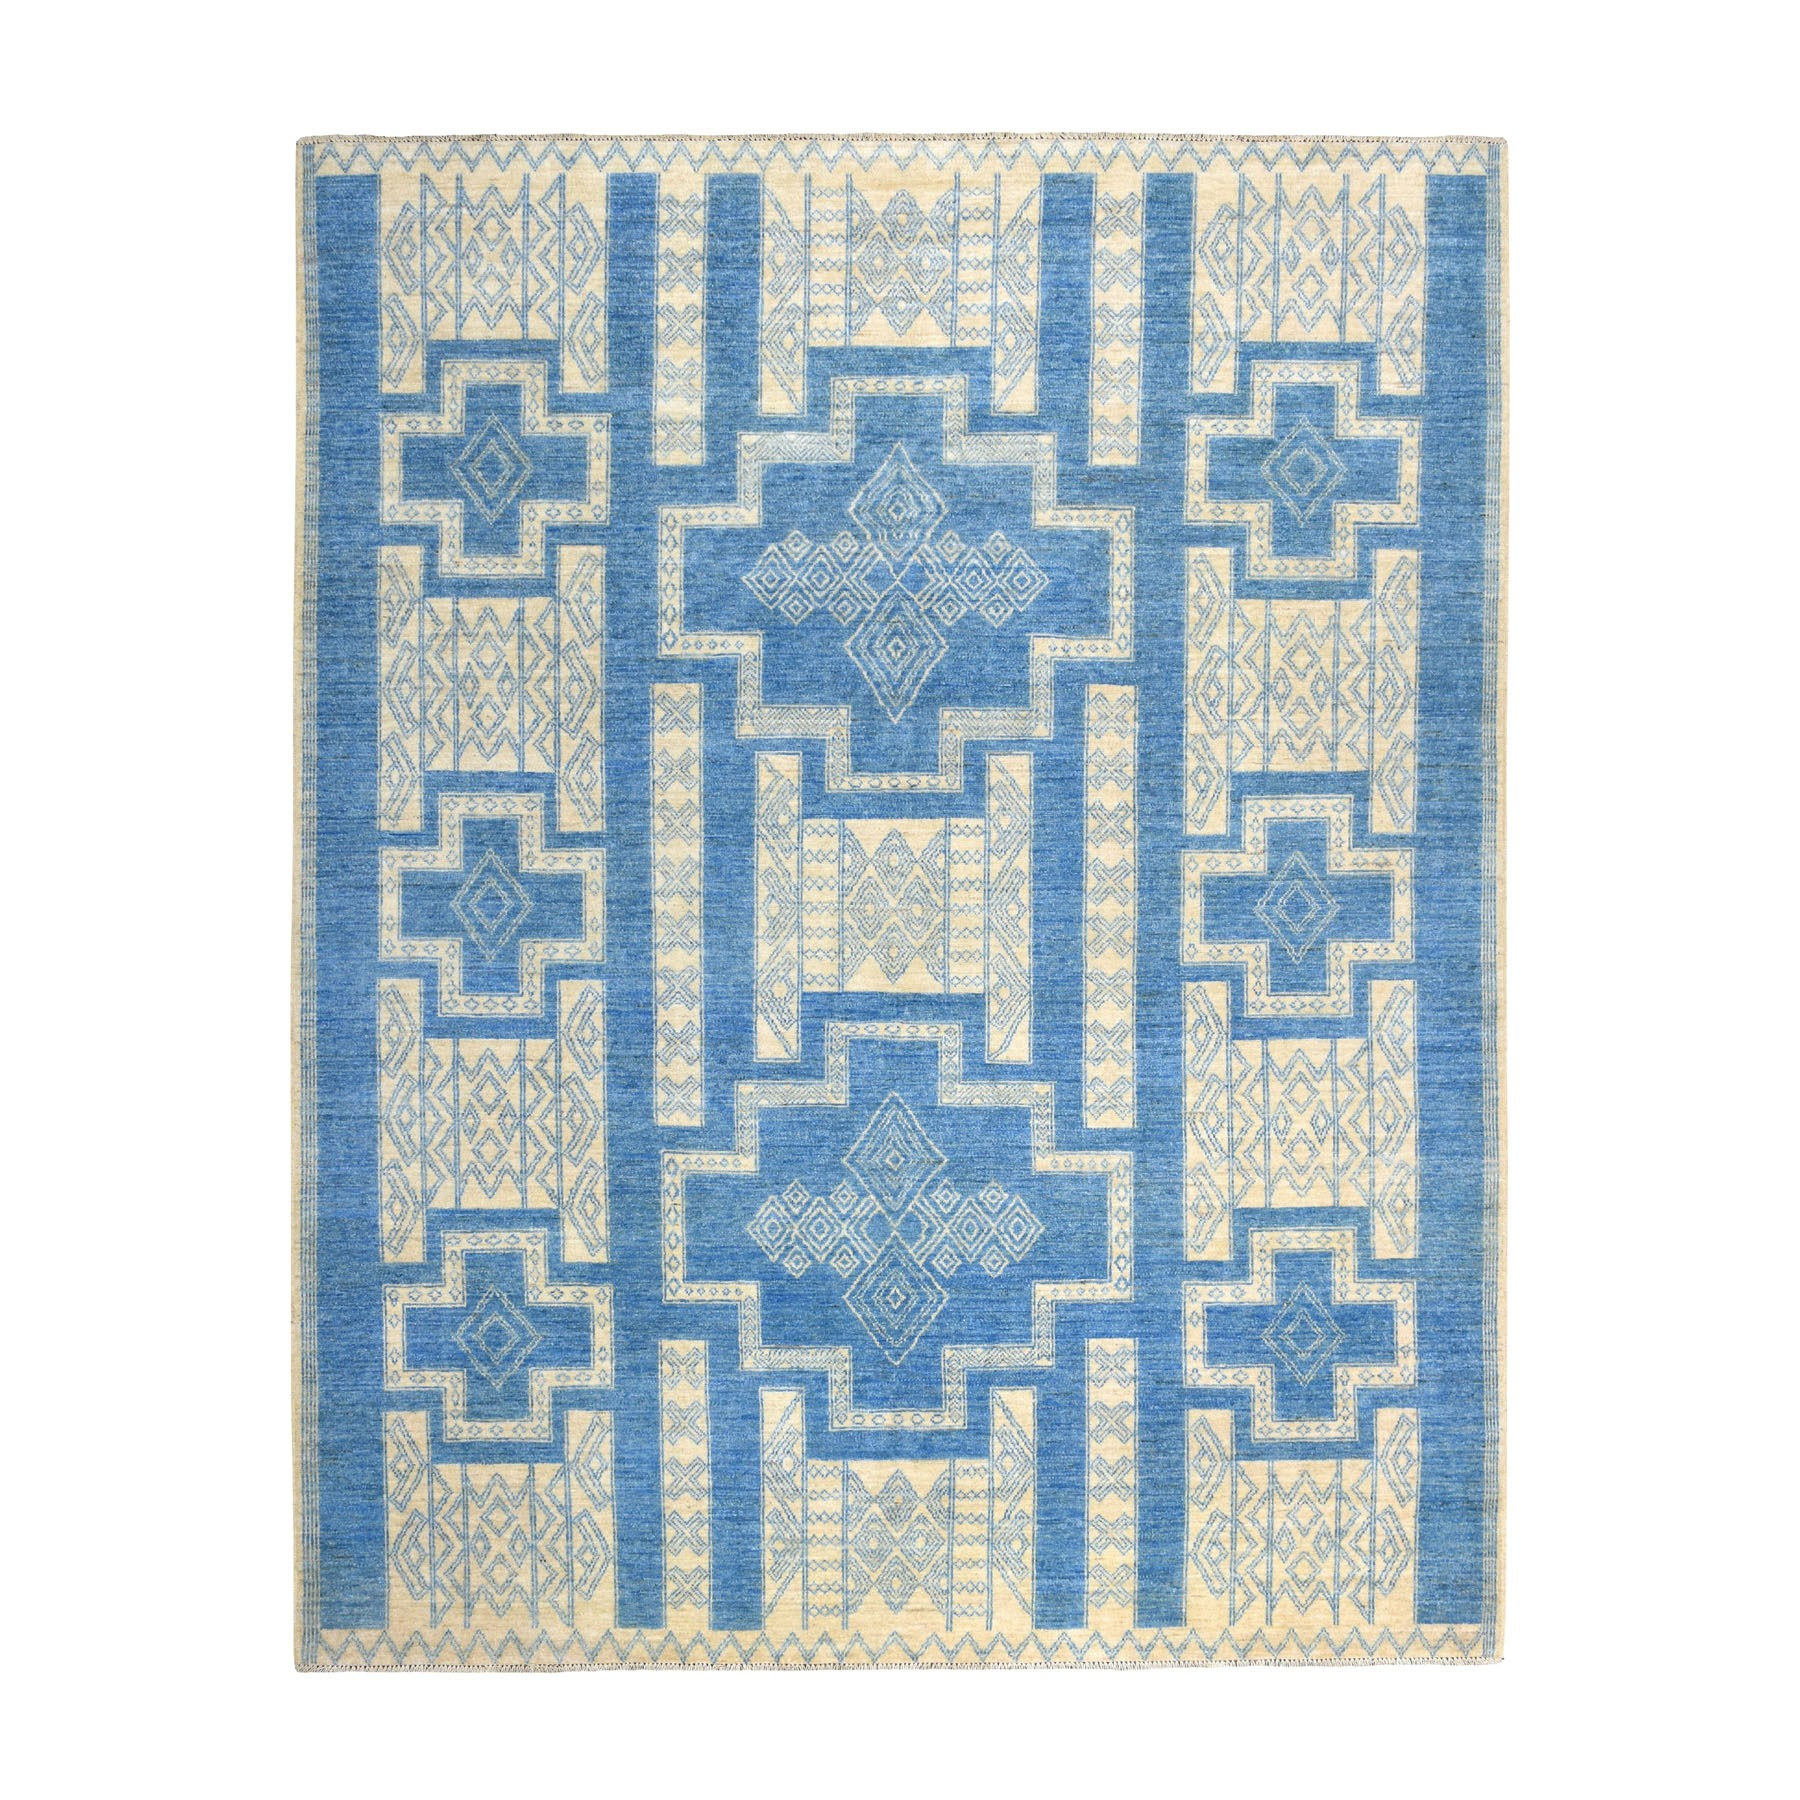 8'x10' Blue Hand Knotted Pure Wool Peshawar with Southwestern Motifs Oriental Rug